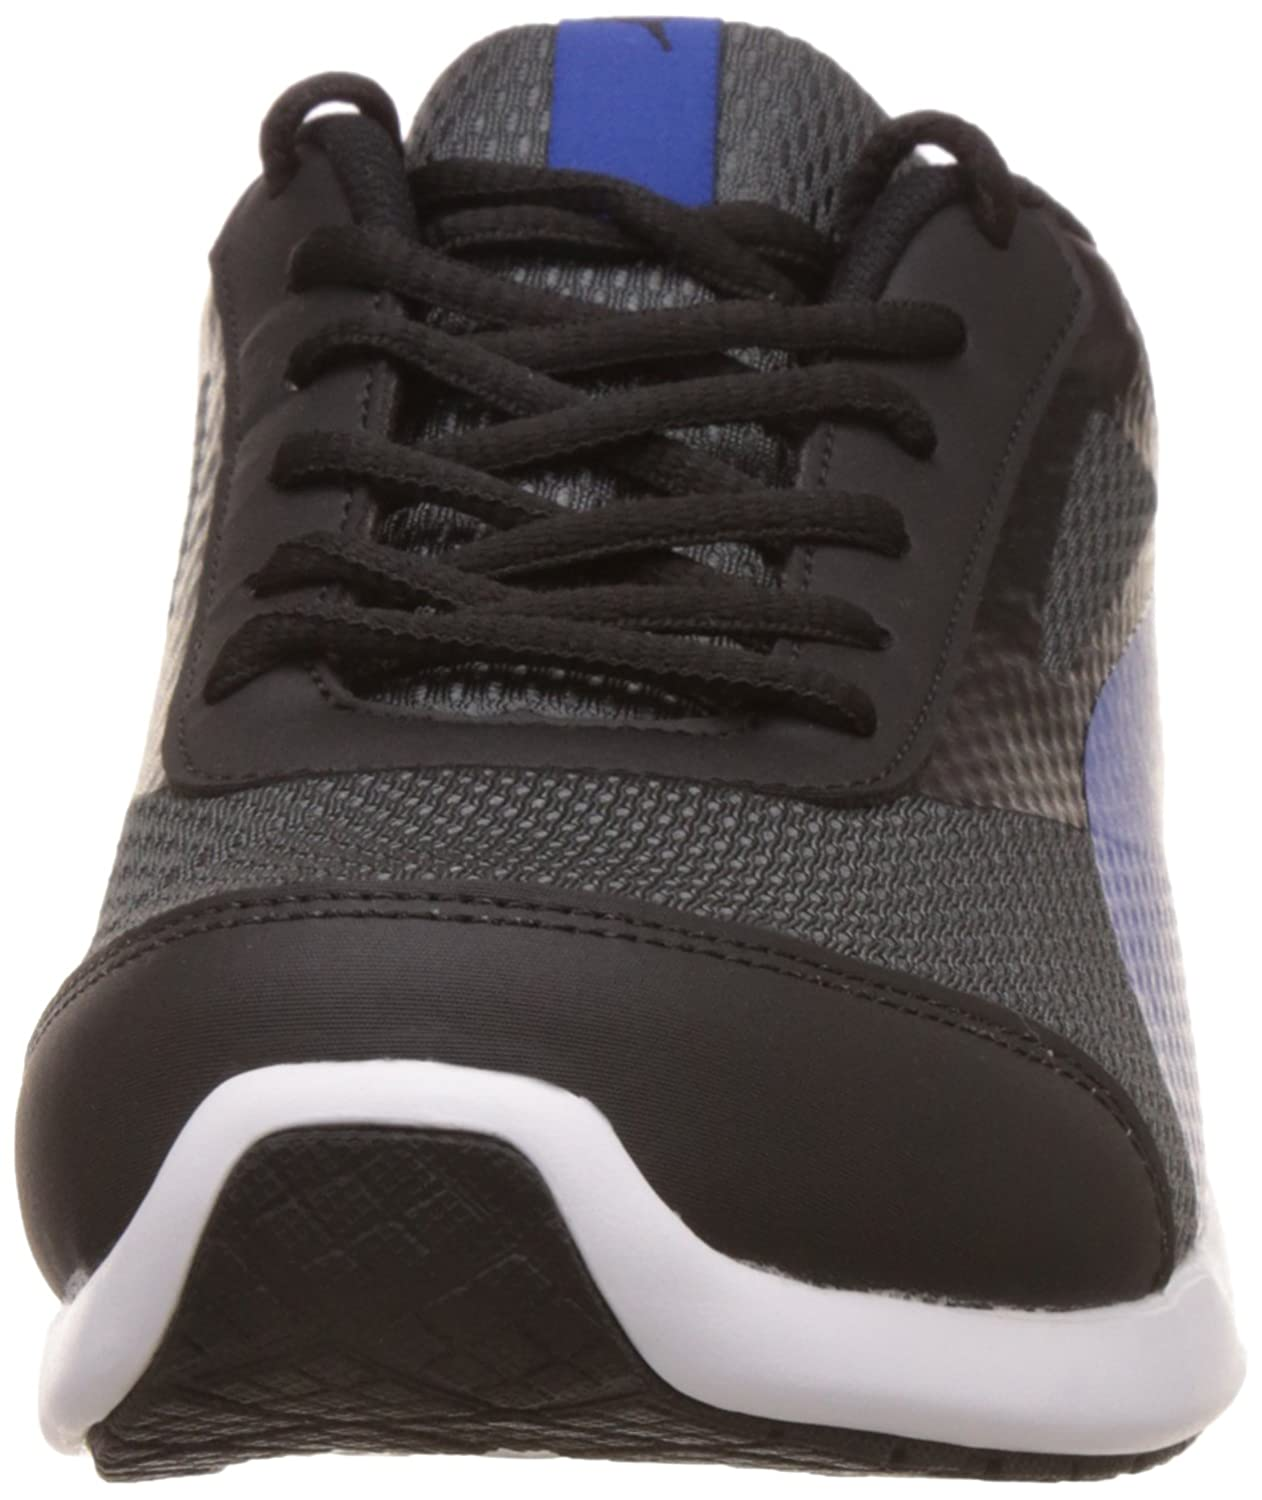 7624093d32bc Puma Men s Magneto Idp Running Shoes  Buy Online at Low Prices in India -  Amazon.in